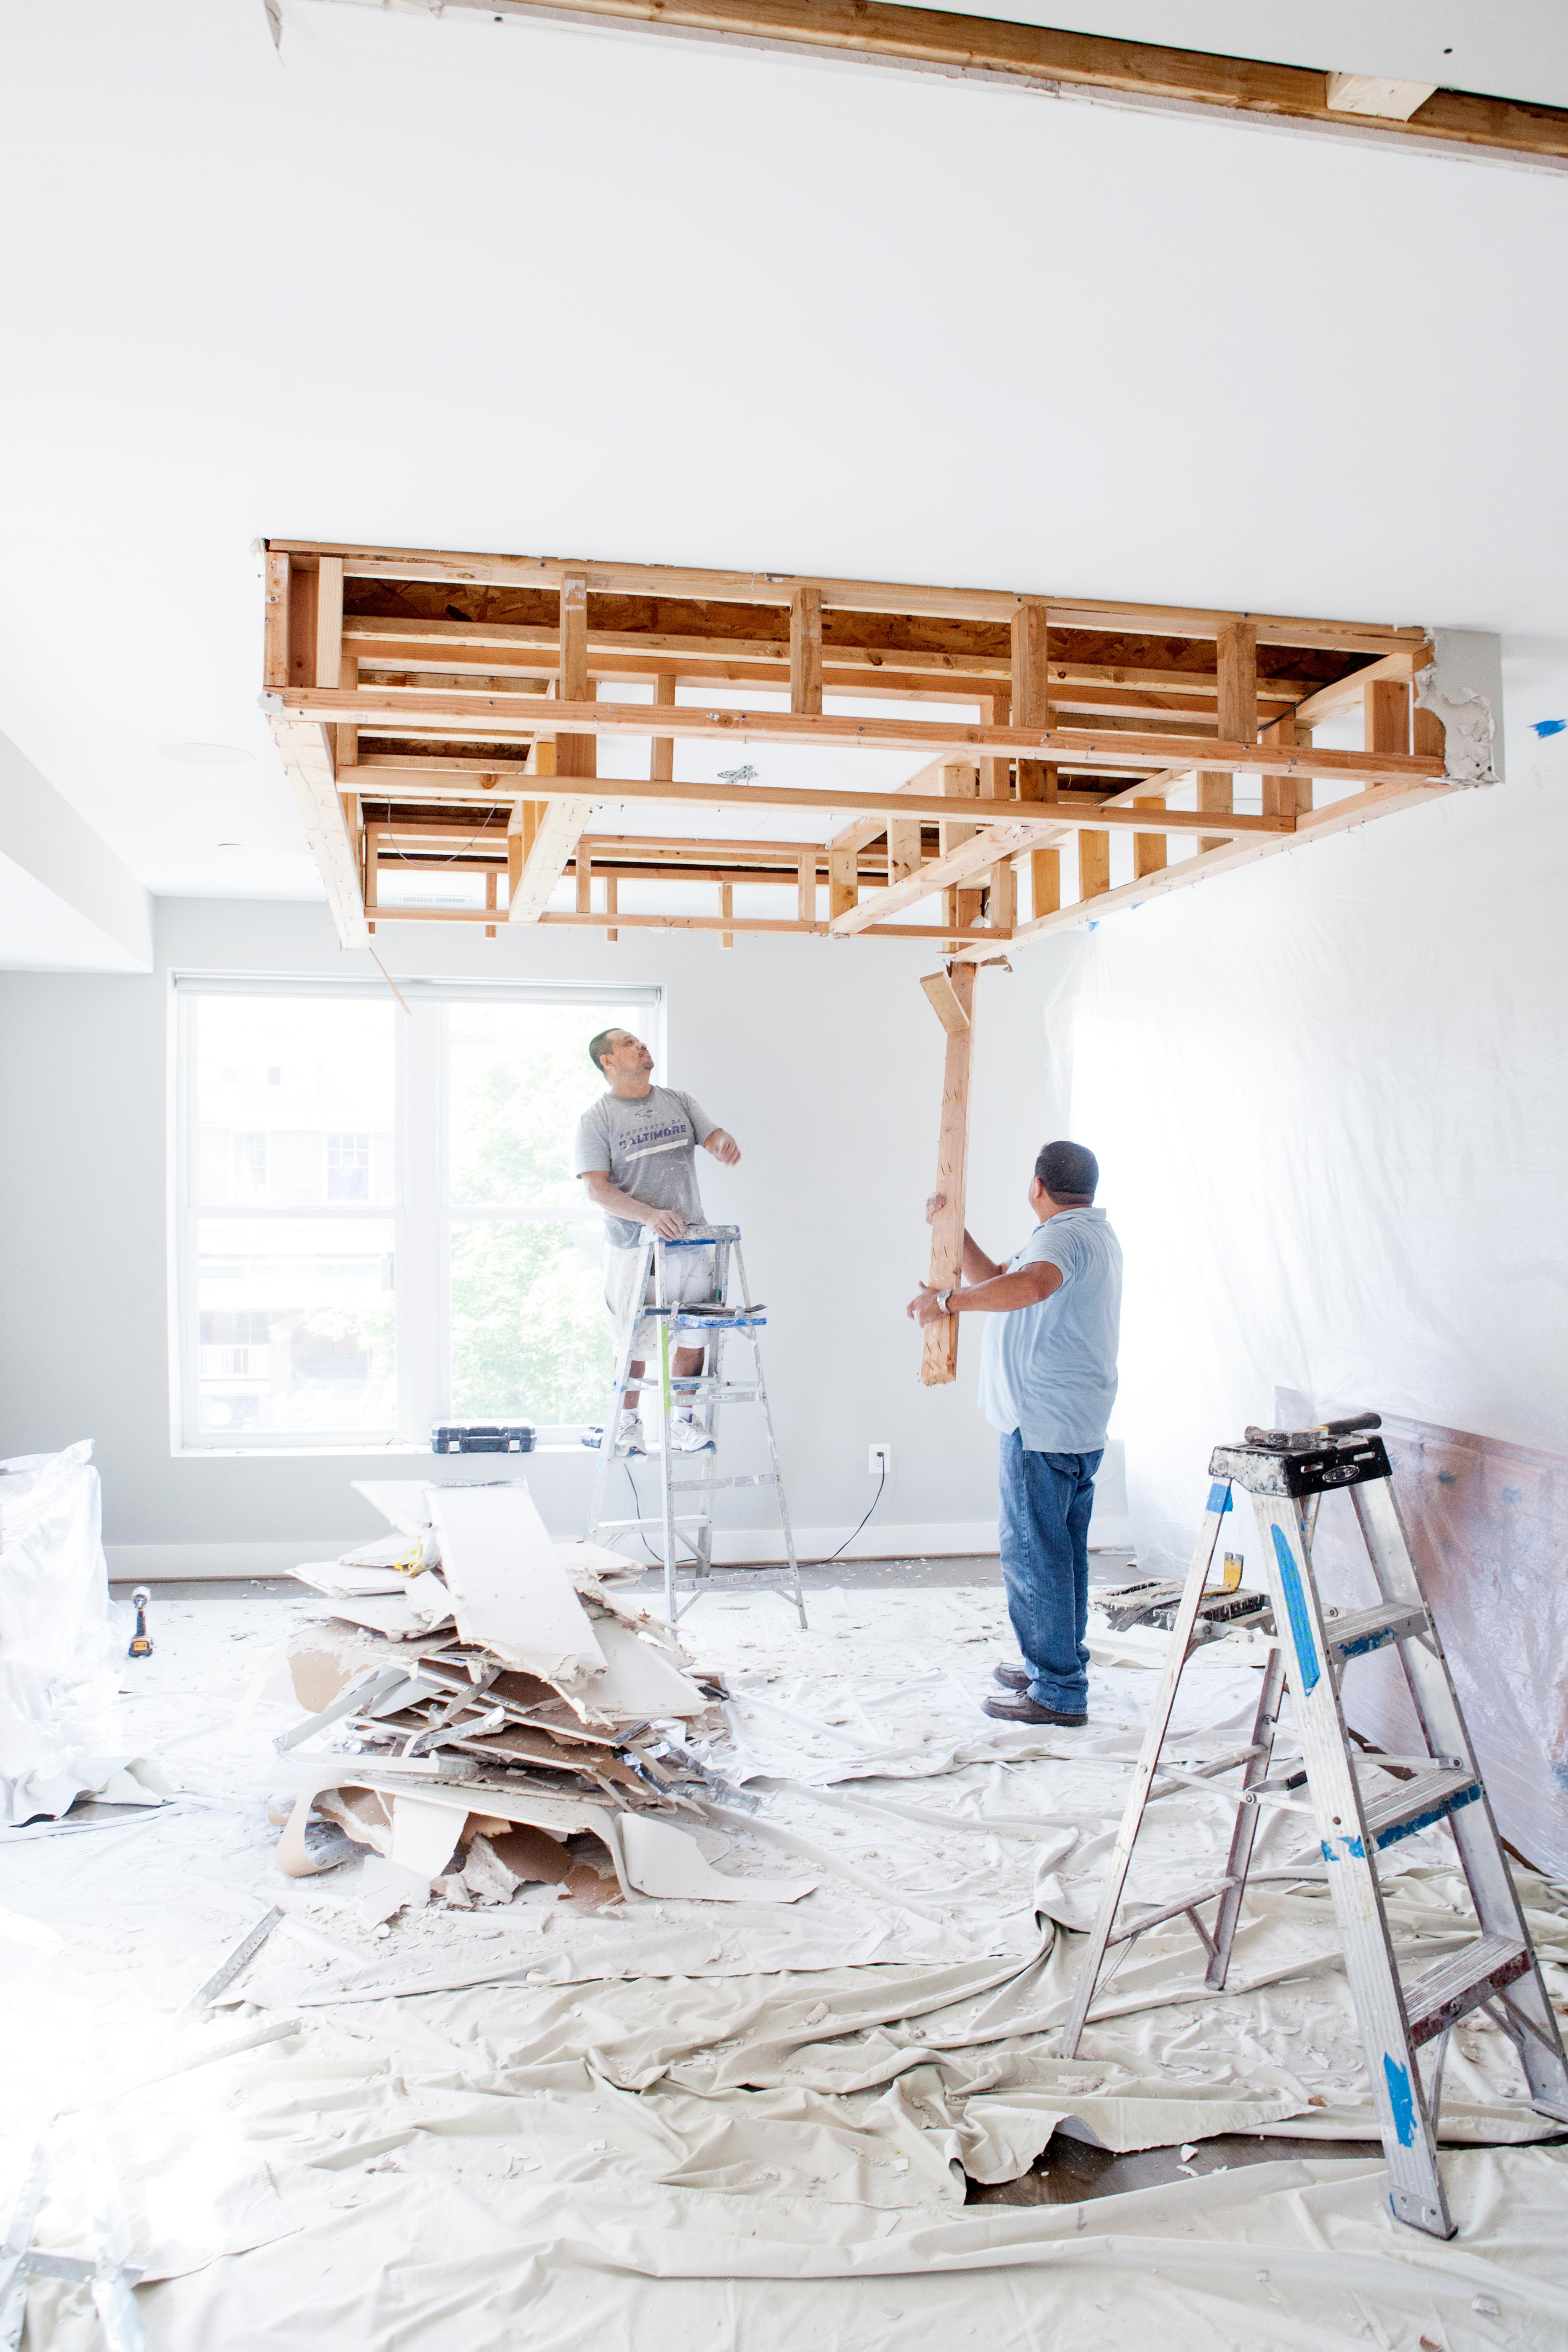 Expect to pay half up front and the other half after the job is done. This is very normal in this industry. This is why it is really important to find an honest contractor. I have heard horror stories of contractors disappearing after they get paid the first half for the job.(Image: Ashley Hafstead)